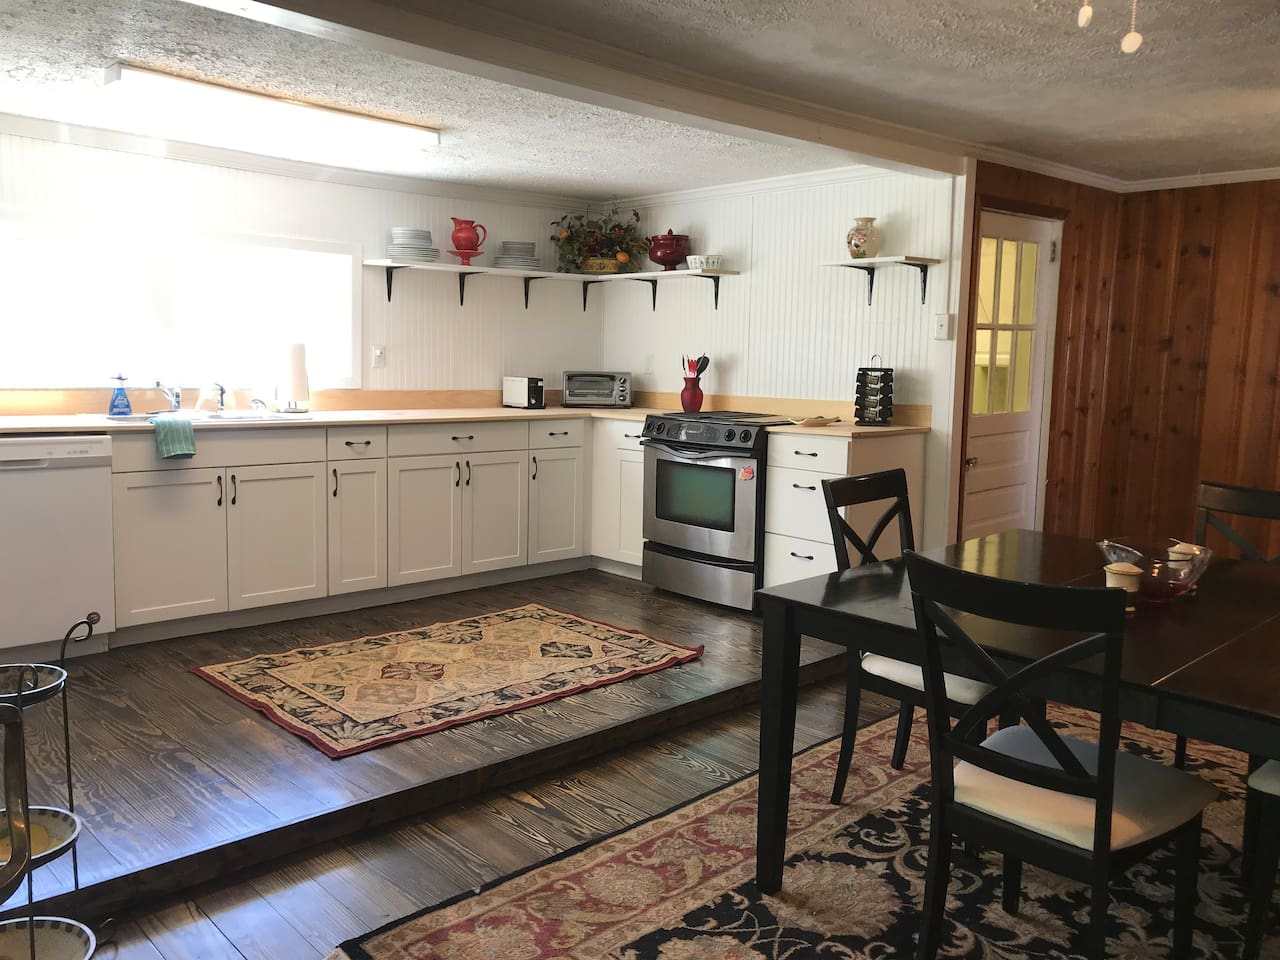 This generously furnished kitchen boasts all of the countertop appliances you'll need and brand new cutlery, dishes and stemware. There is a traditional coffee pot for sharing and also a Keurig for to-go servings. There's complementary coffee too!